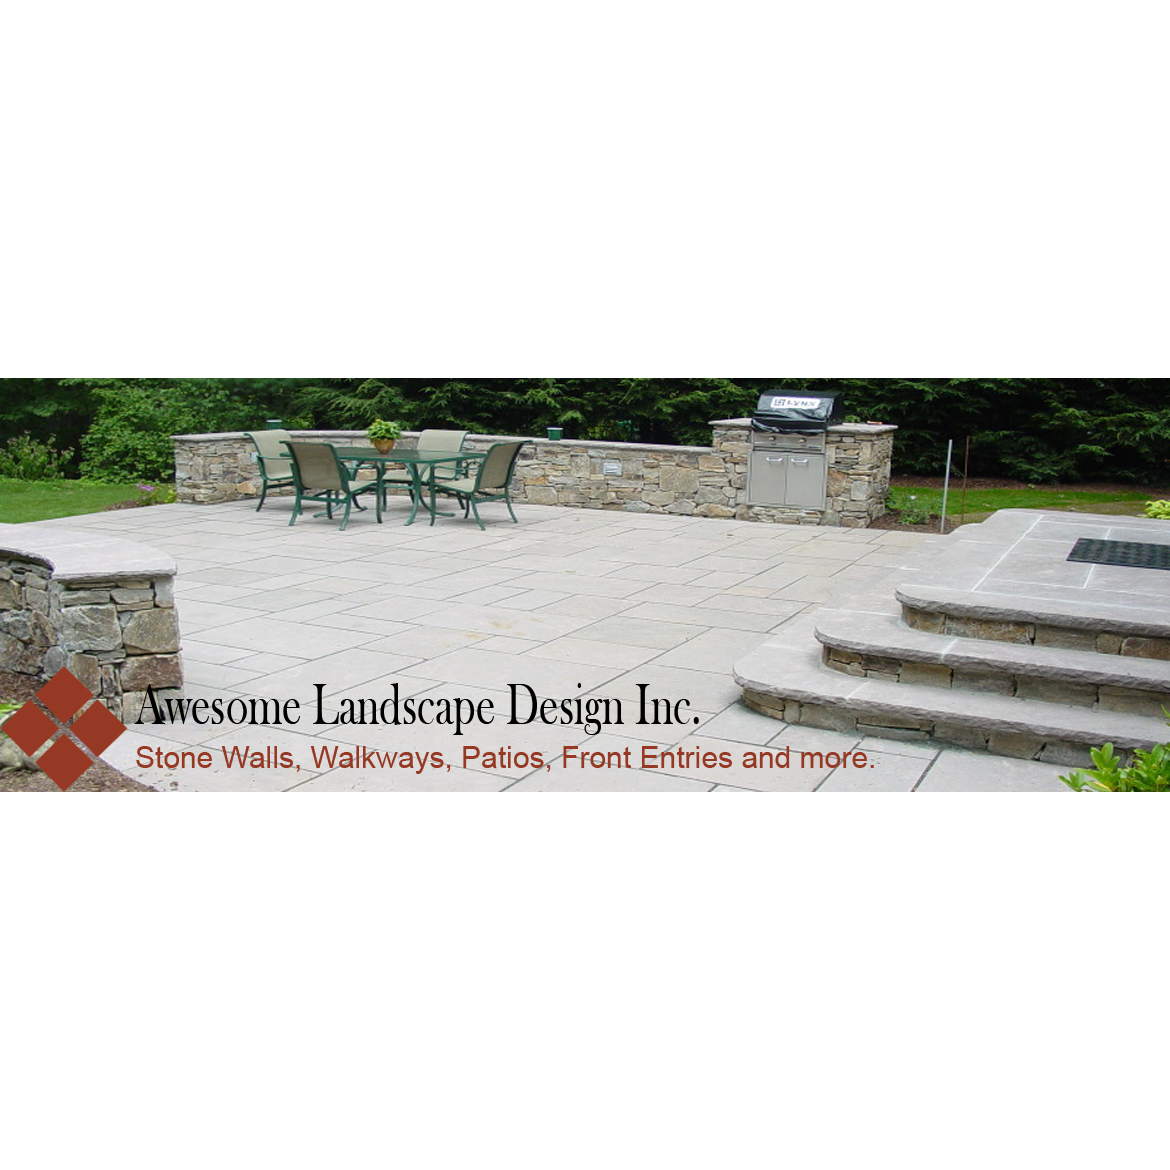 awesome landscape design inc in westborough ma 01581